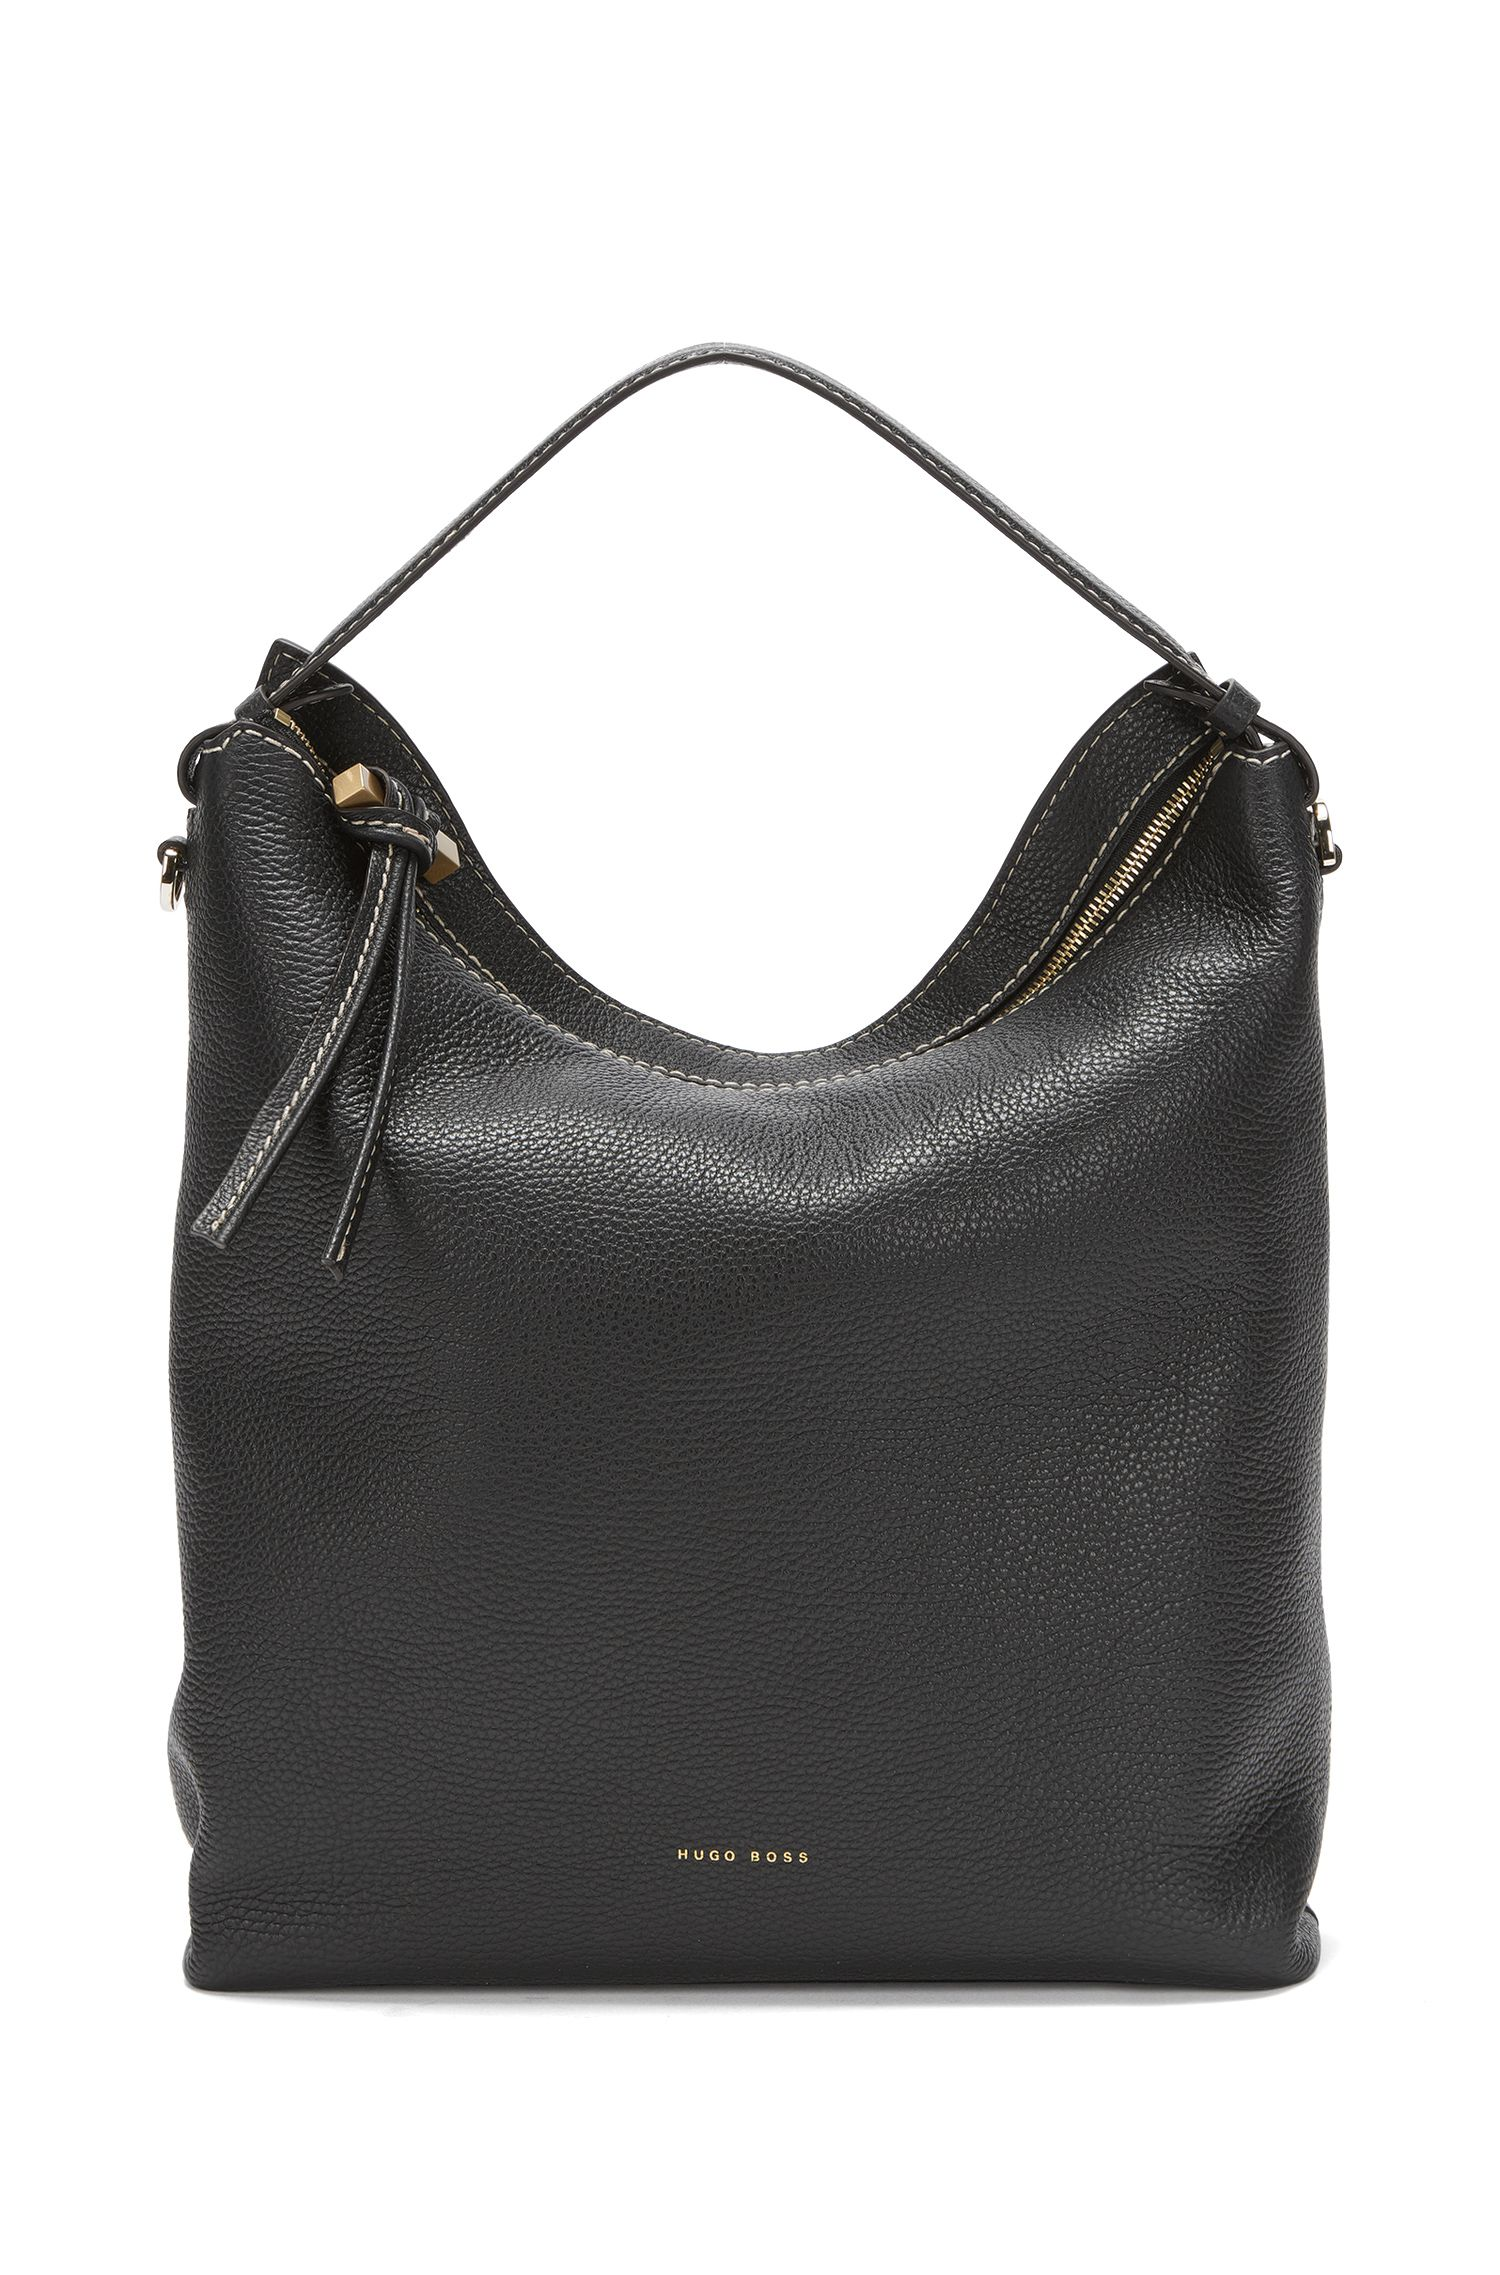 BOSS Bespoke hobo in Italian leather